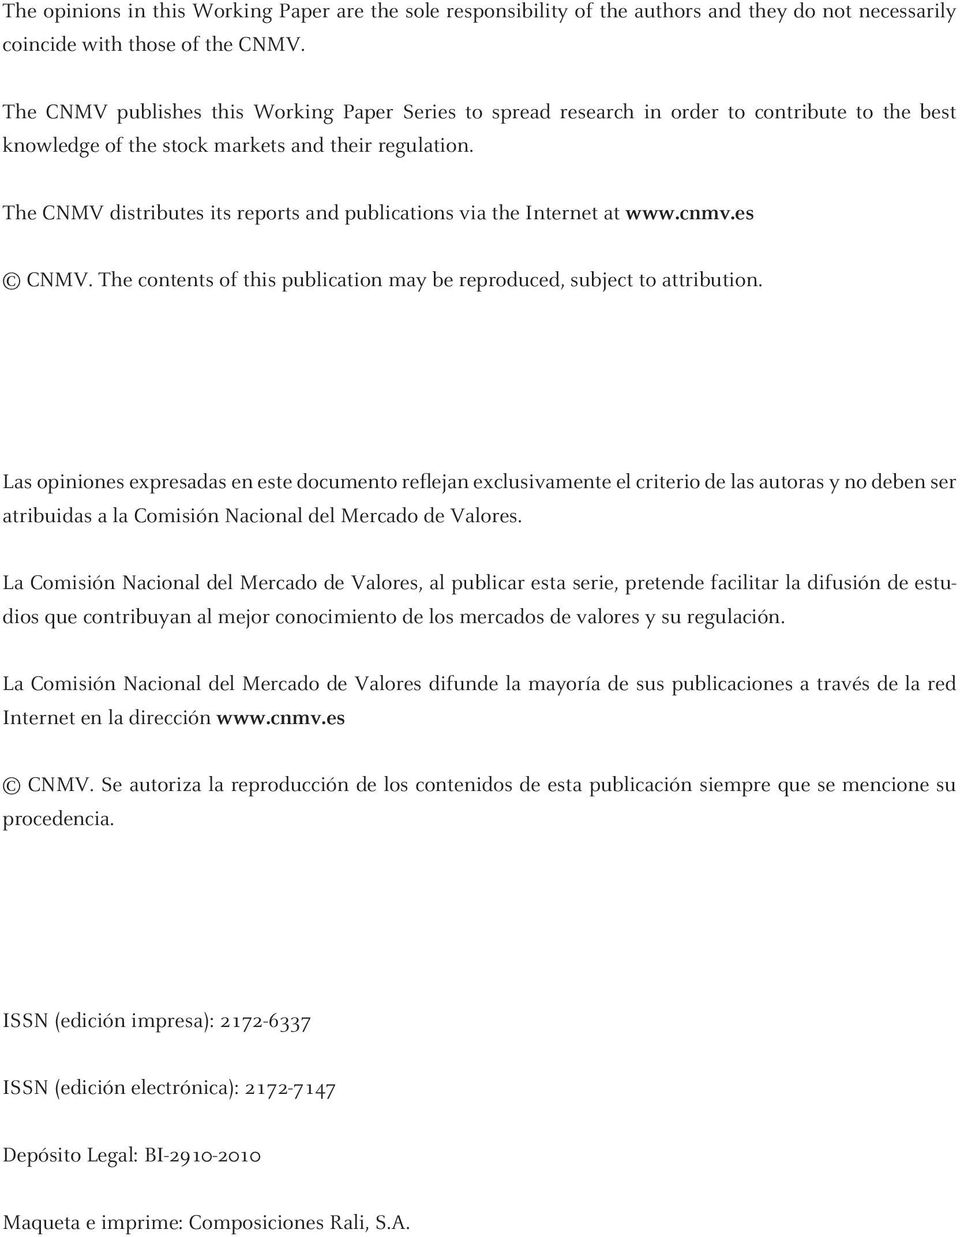 The CNMV distributes its reports and publications via the Internet at www.cnmv.es CNMV. The contents of this publication may be reproduced, subject to attribution.